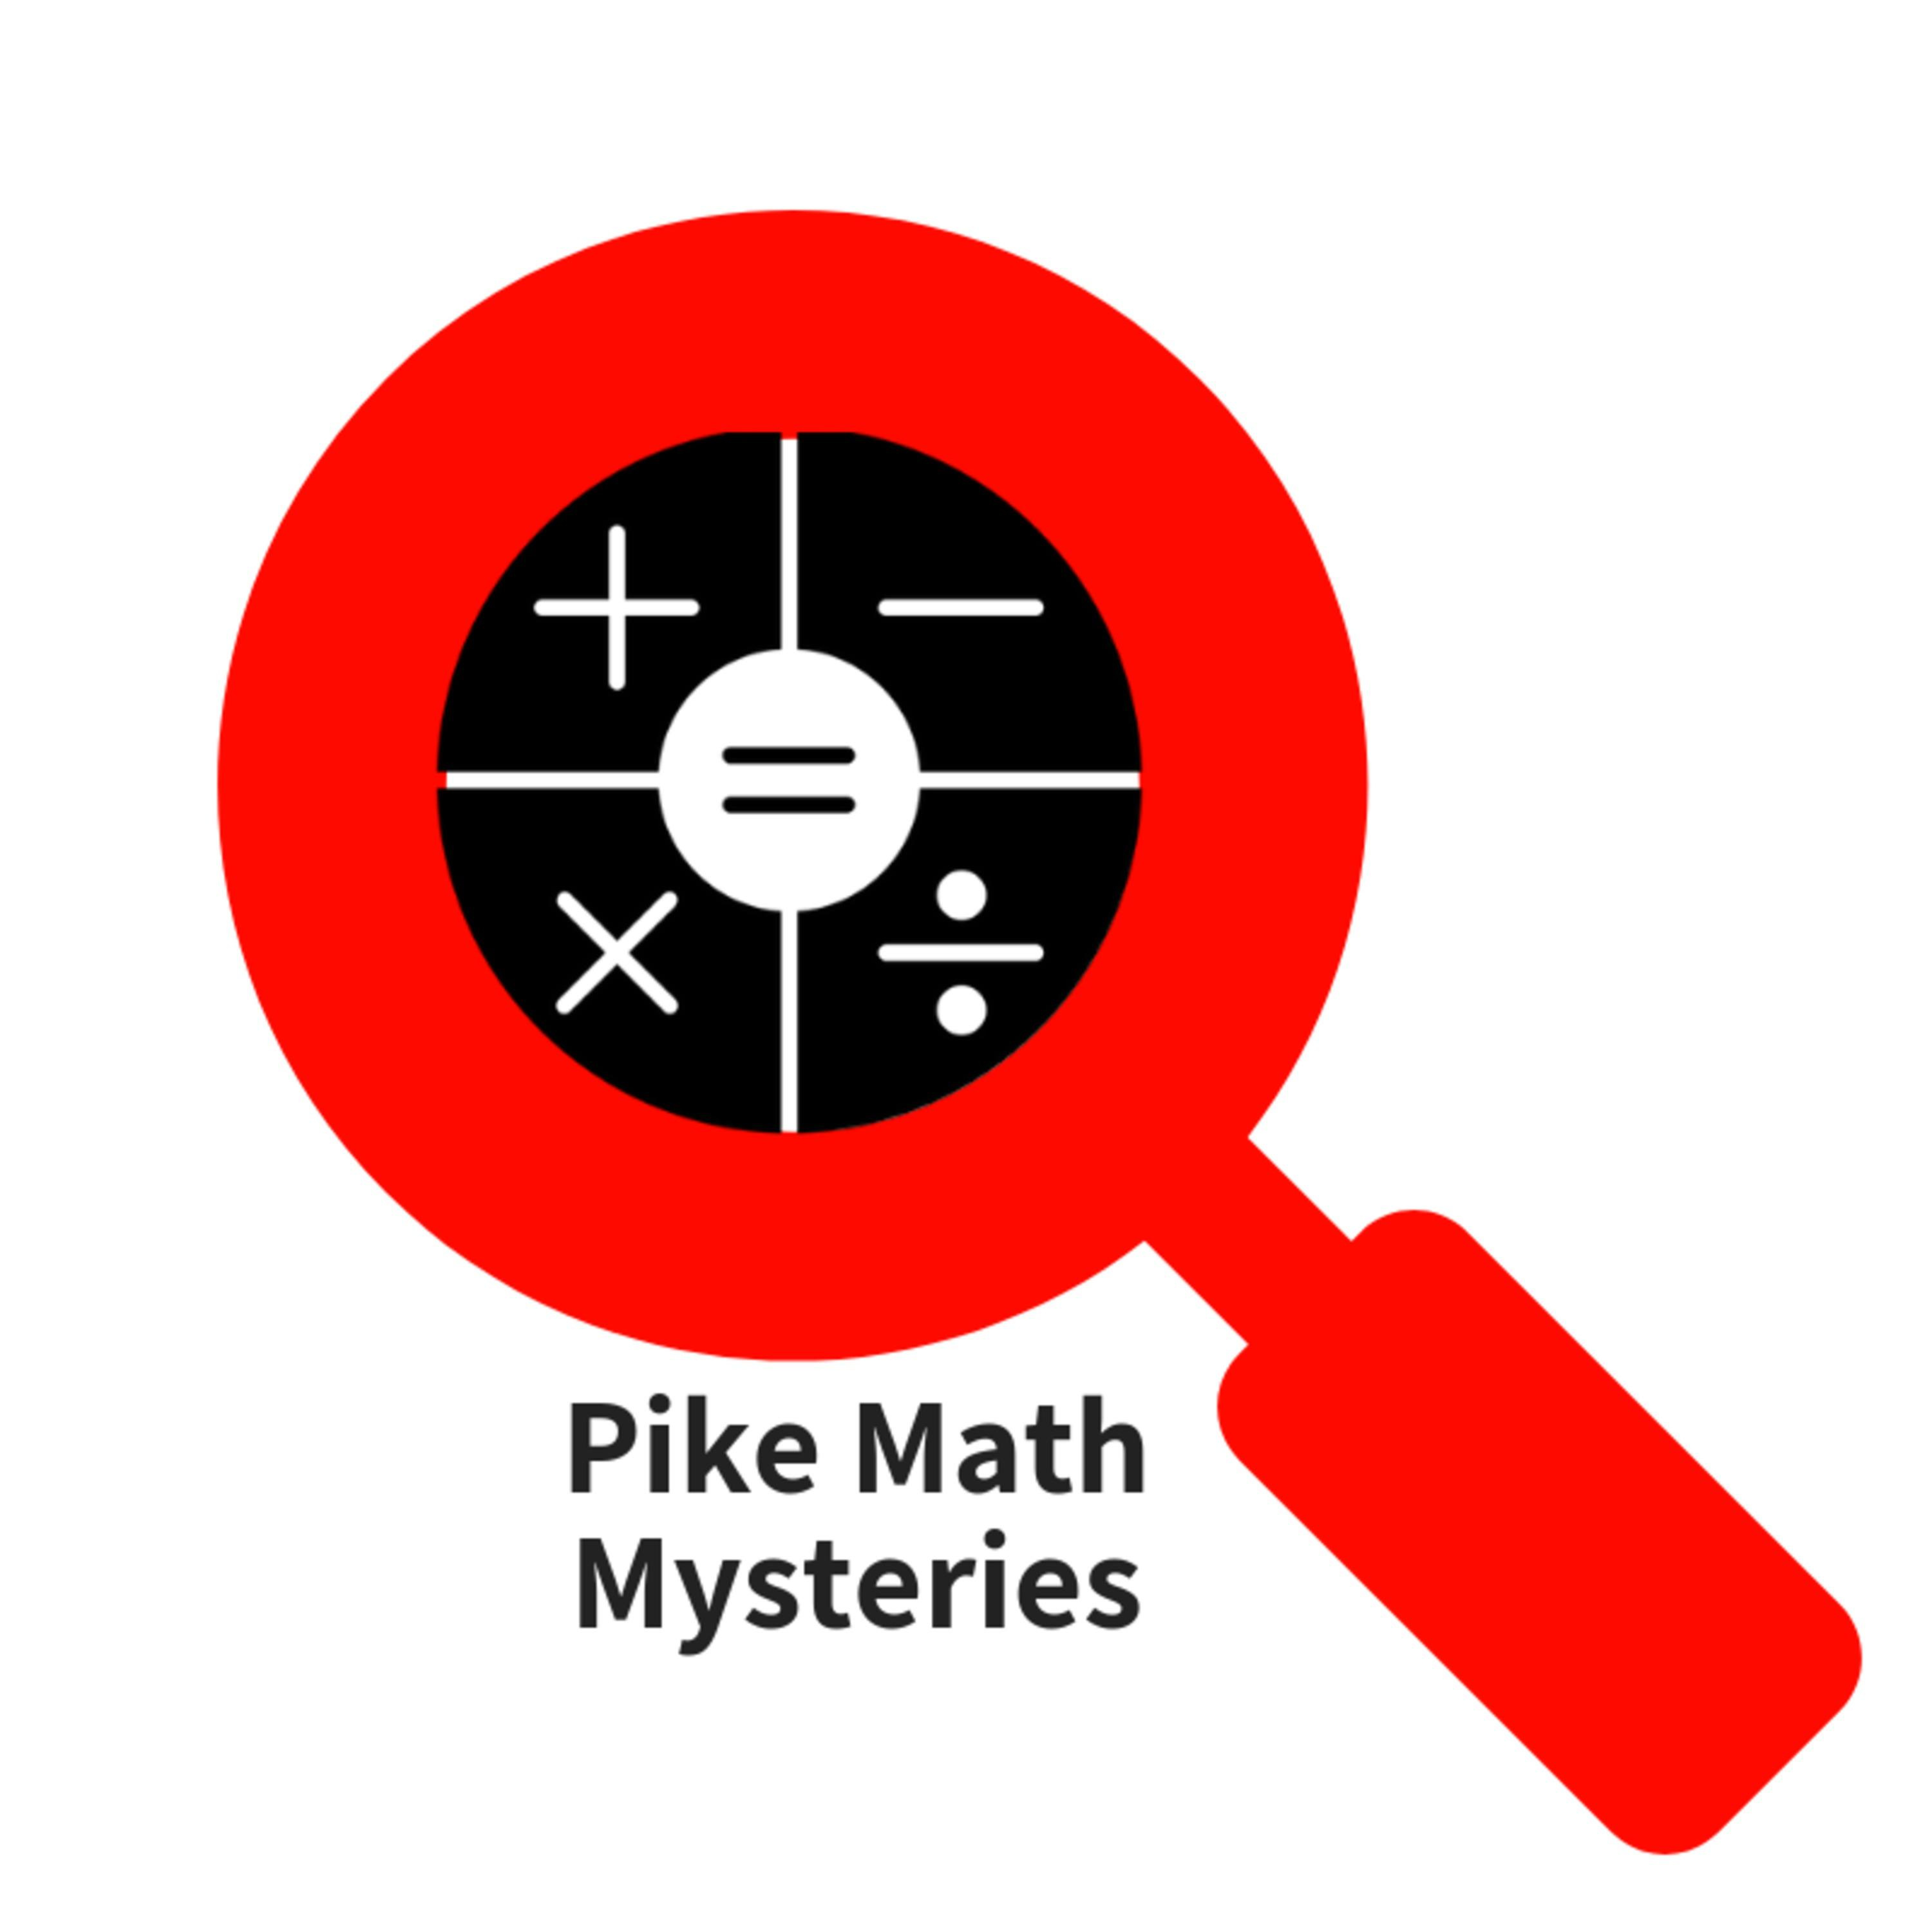 Pike Math Mysteries | Listen via Stitcher for Podcasts